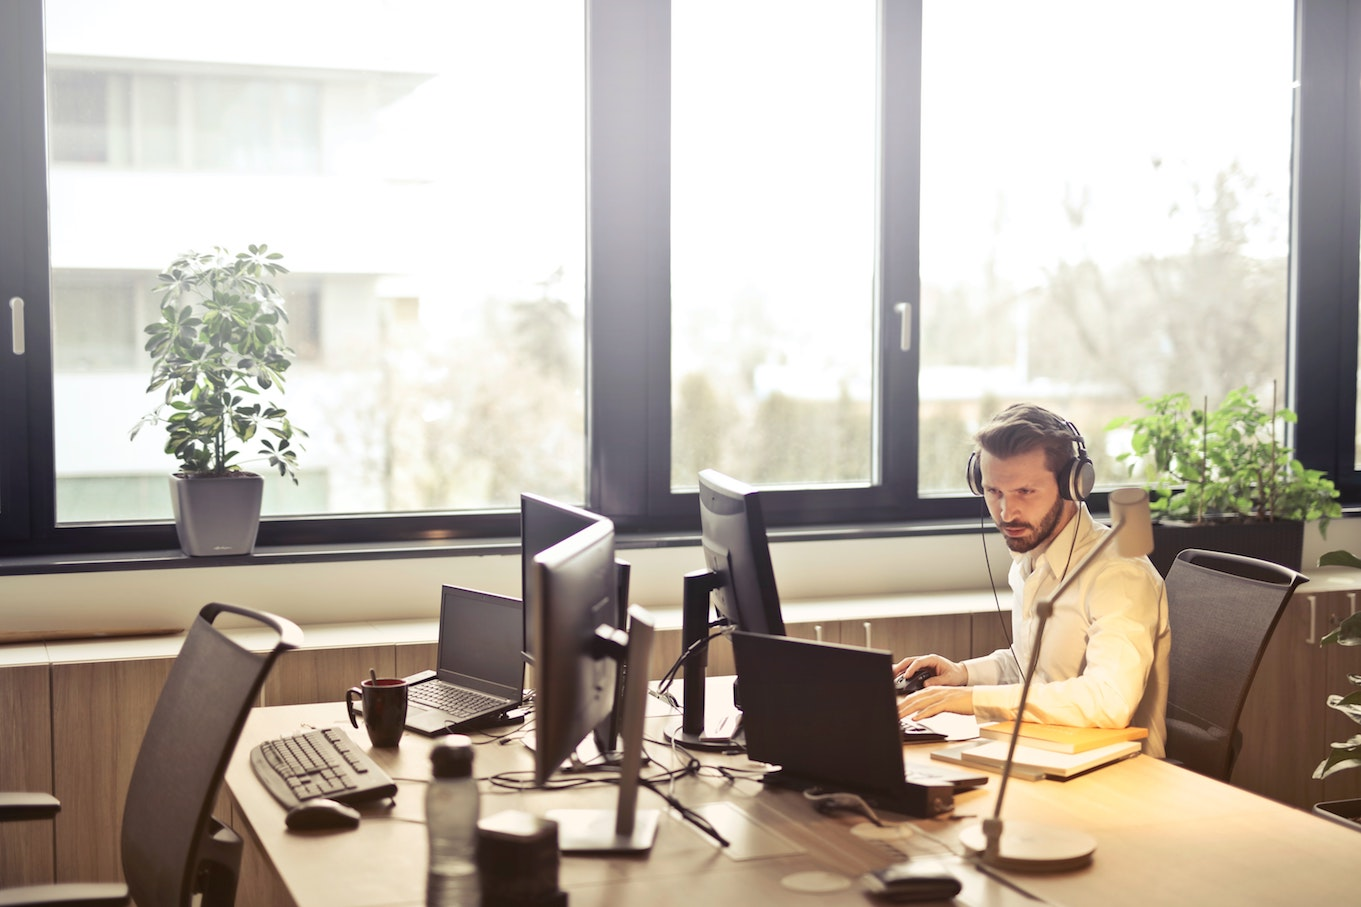 4 ways to stay connected to customers during COVID-19